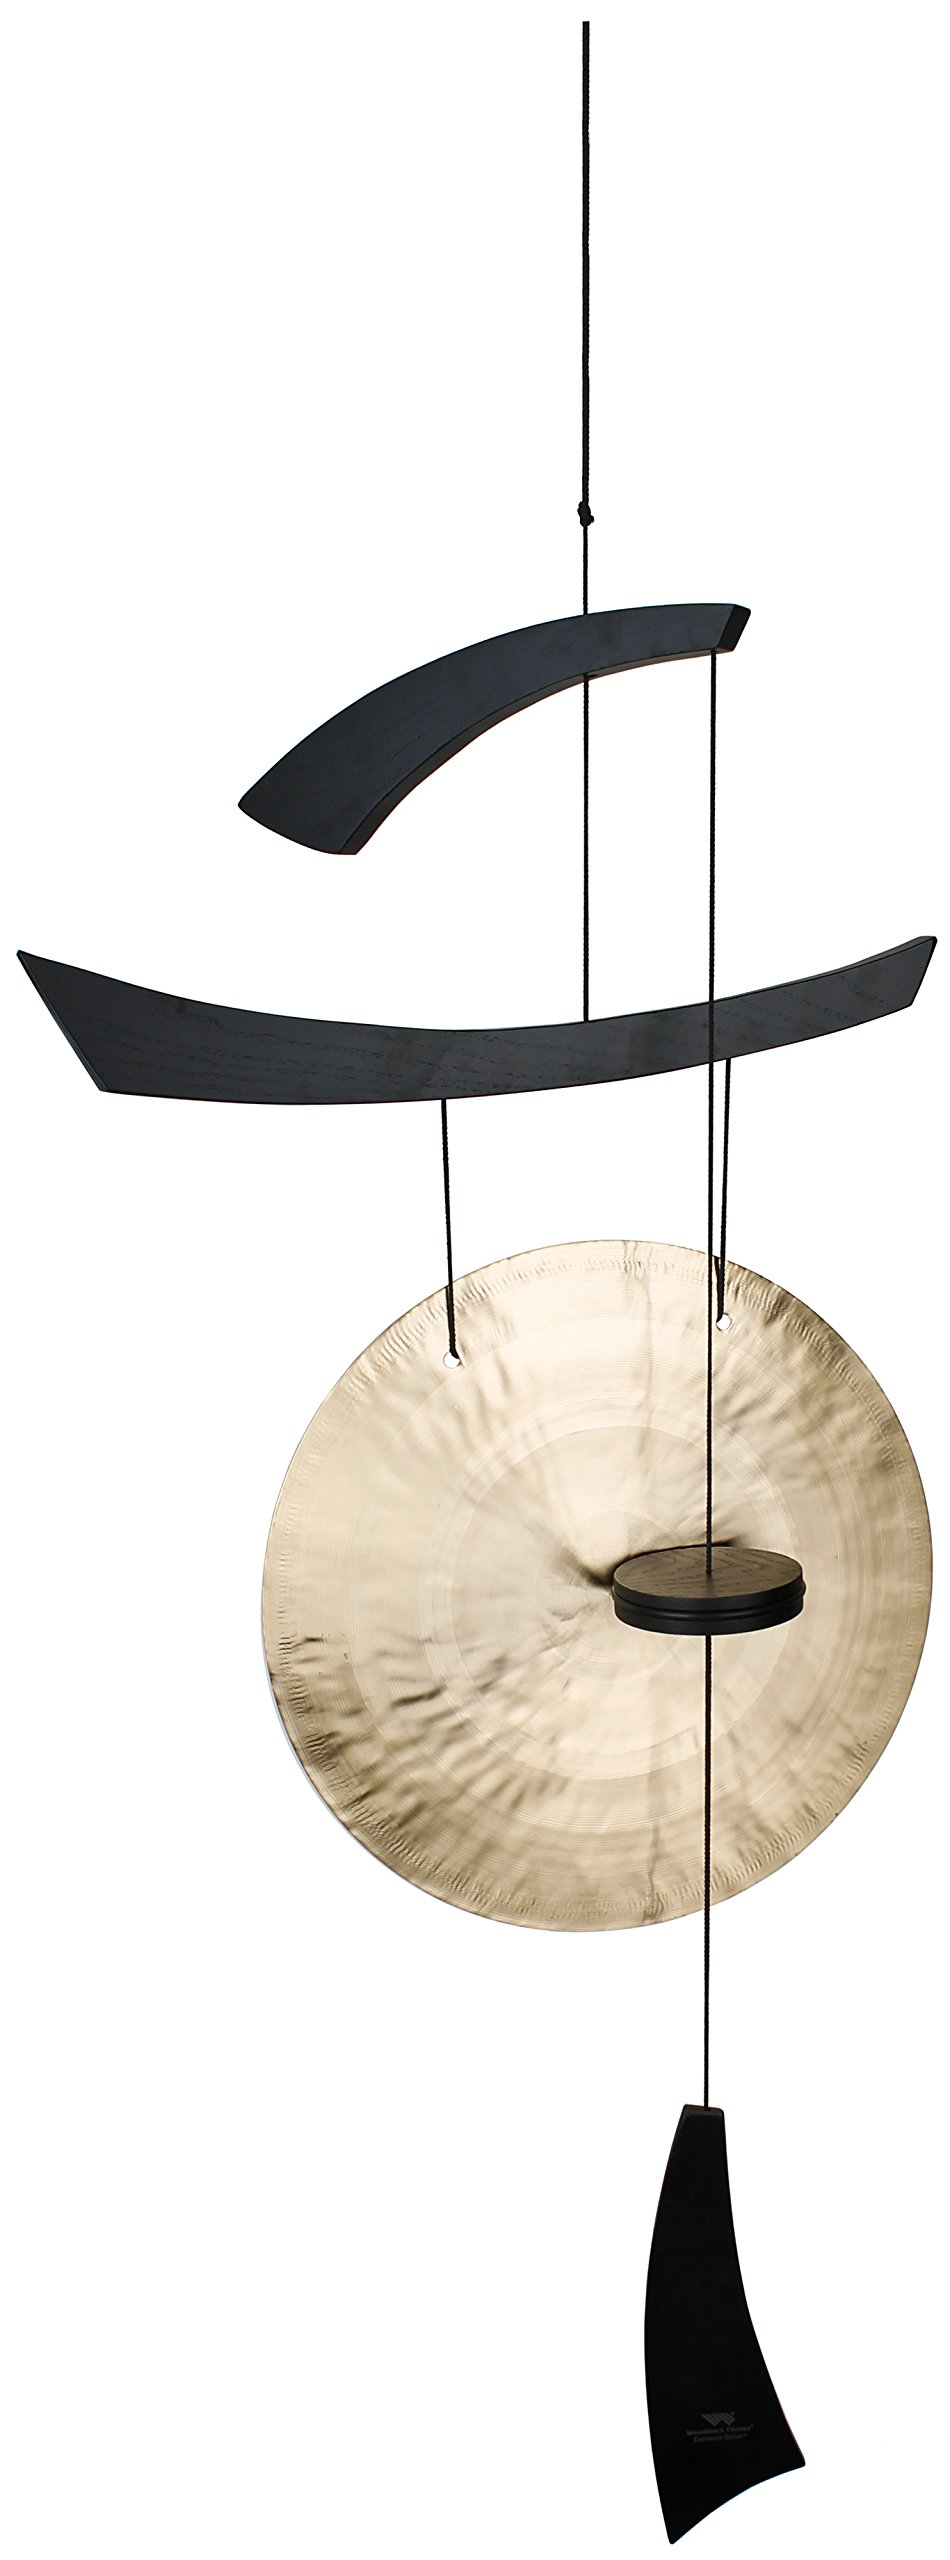 Woodstock Large Emperor Gong, Black by Woodstock Chimes